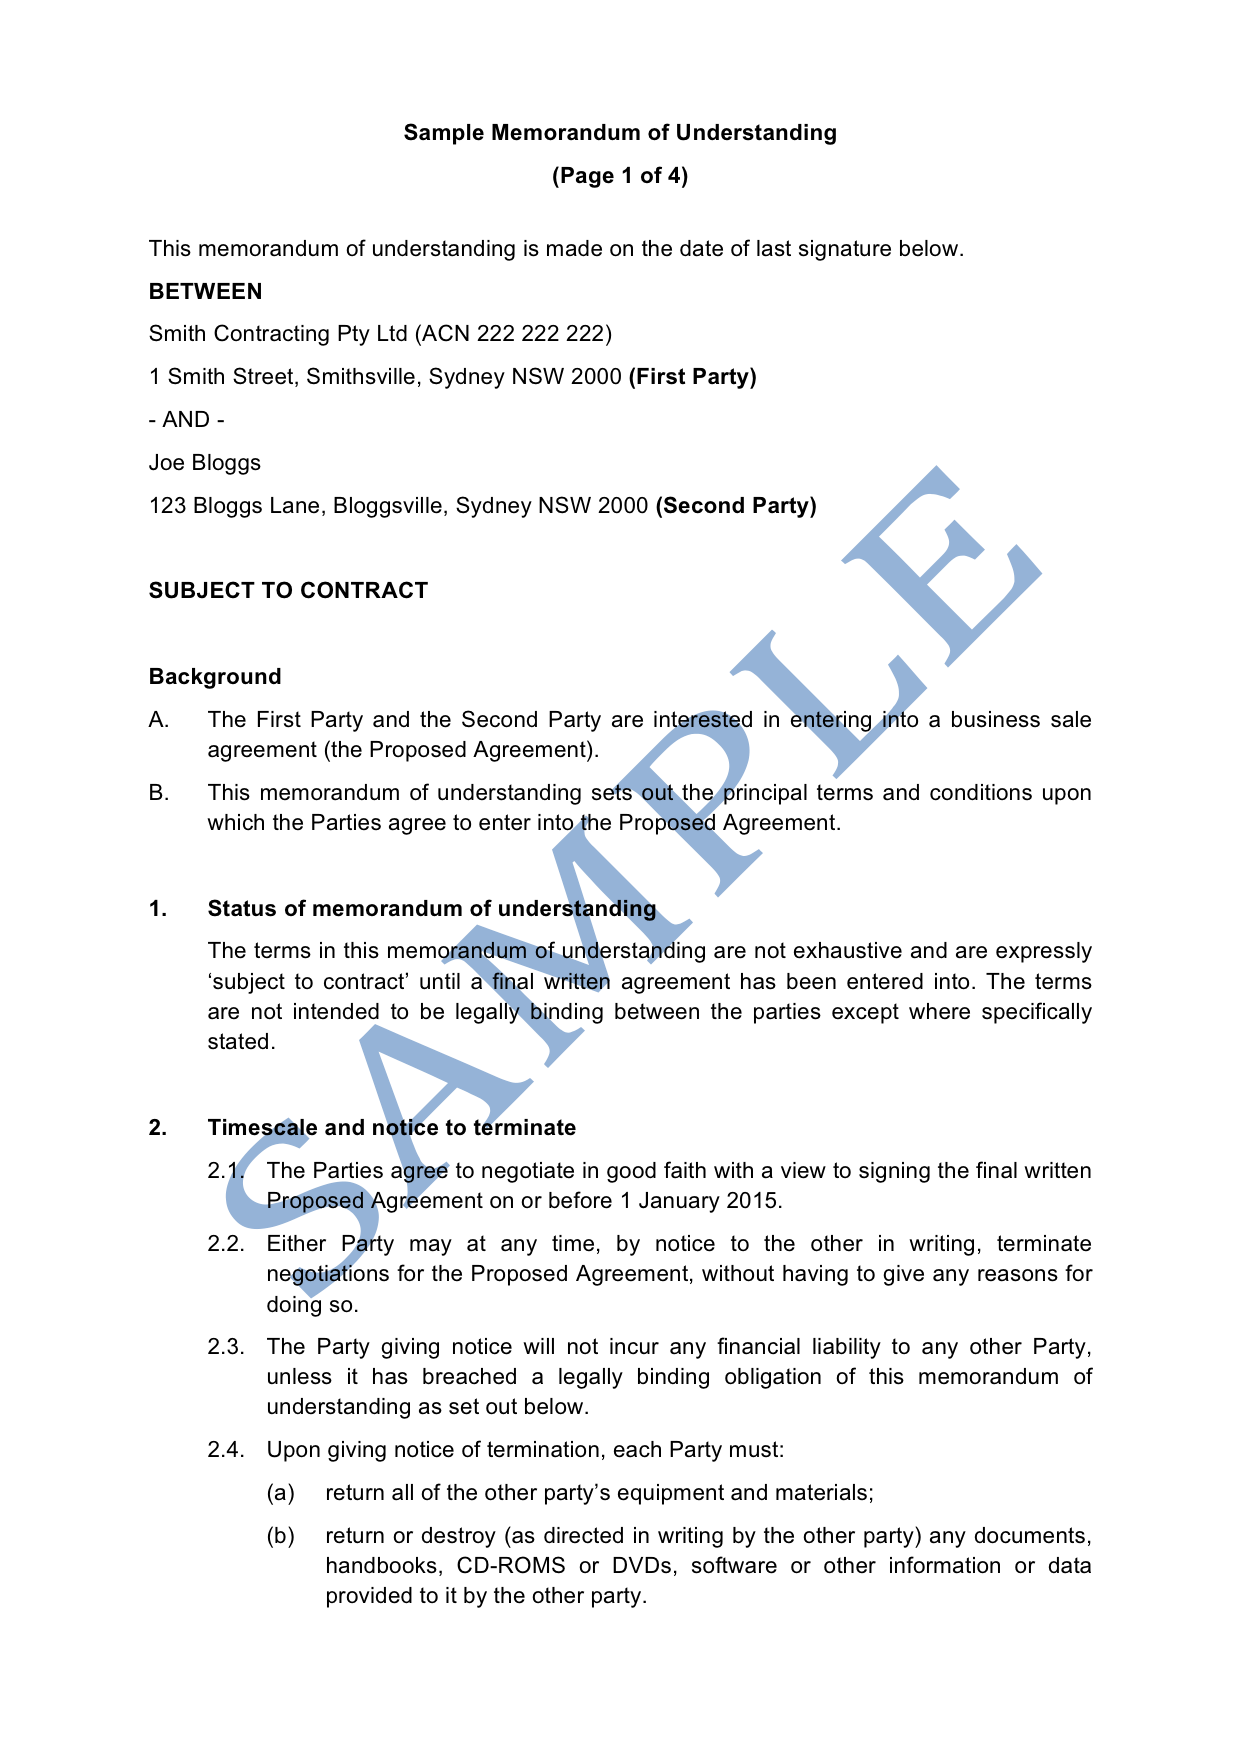 Memorandum Of Understanding Free Template Sample Lawpath